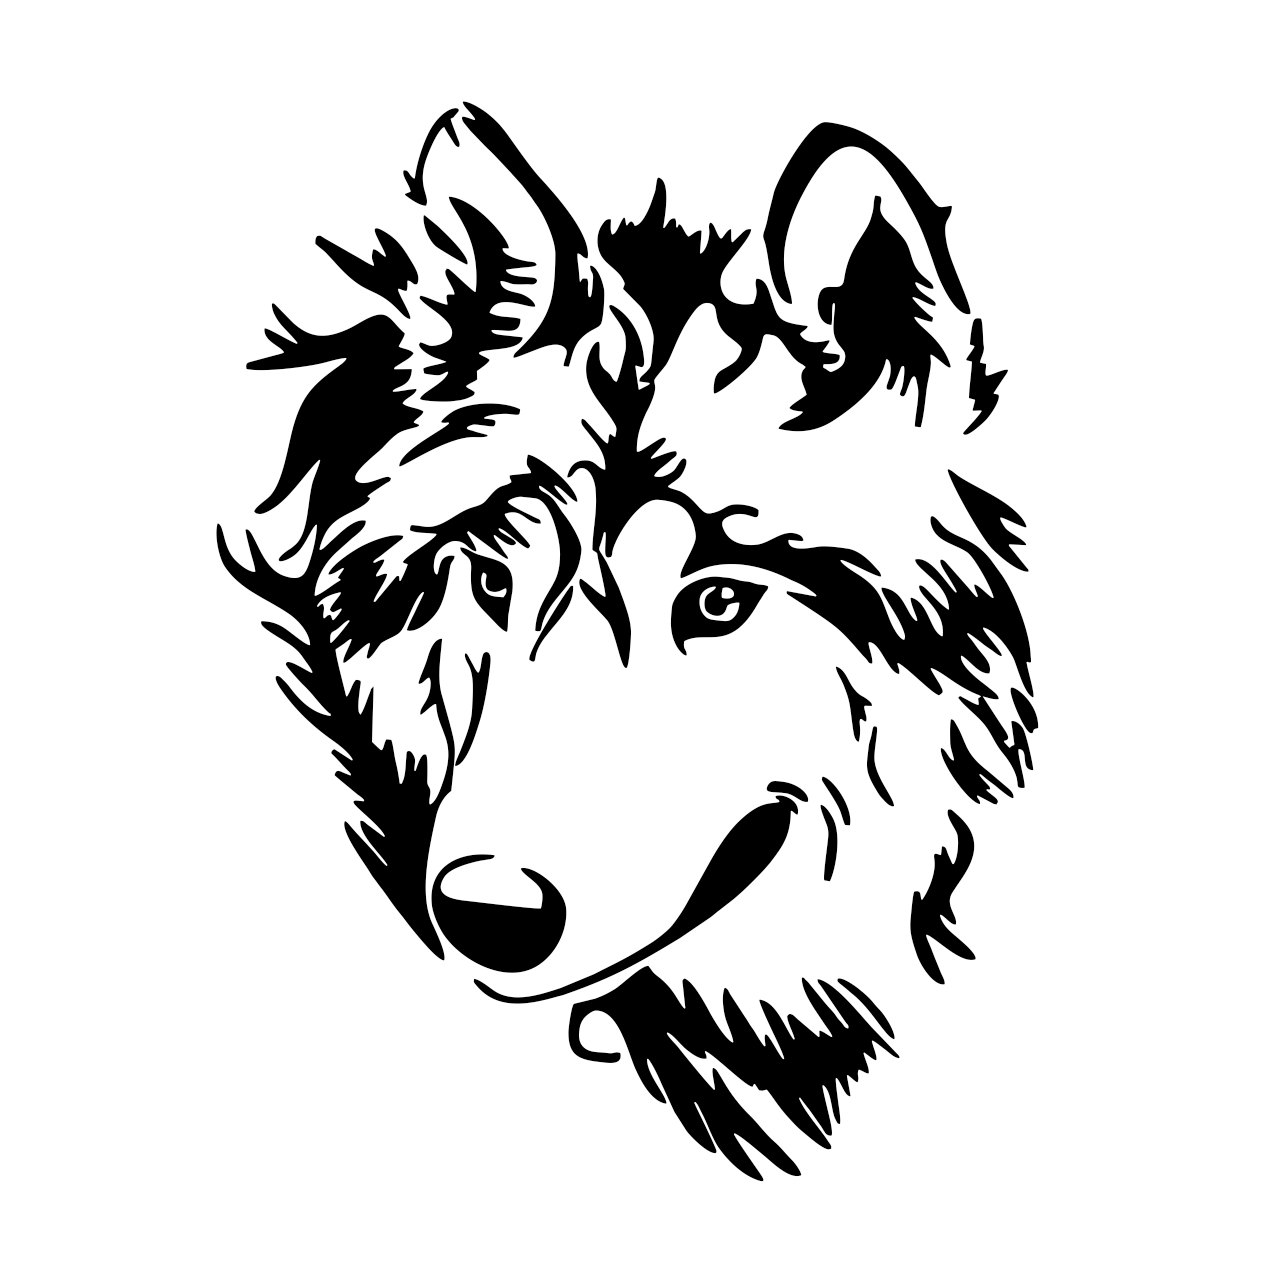 Wolf Head Wild Graphics Design Svg Dxf Eps By Vectordesign